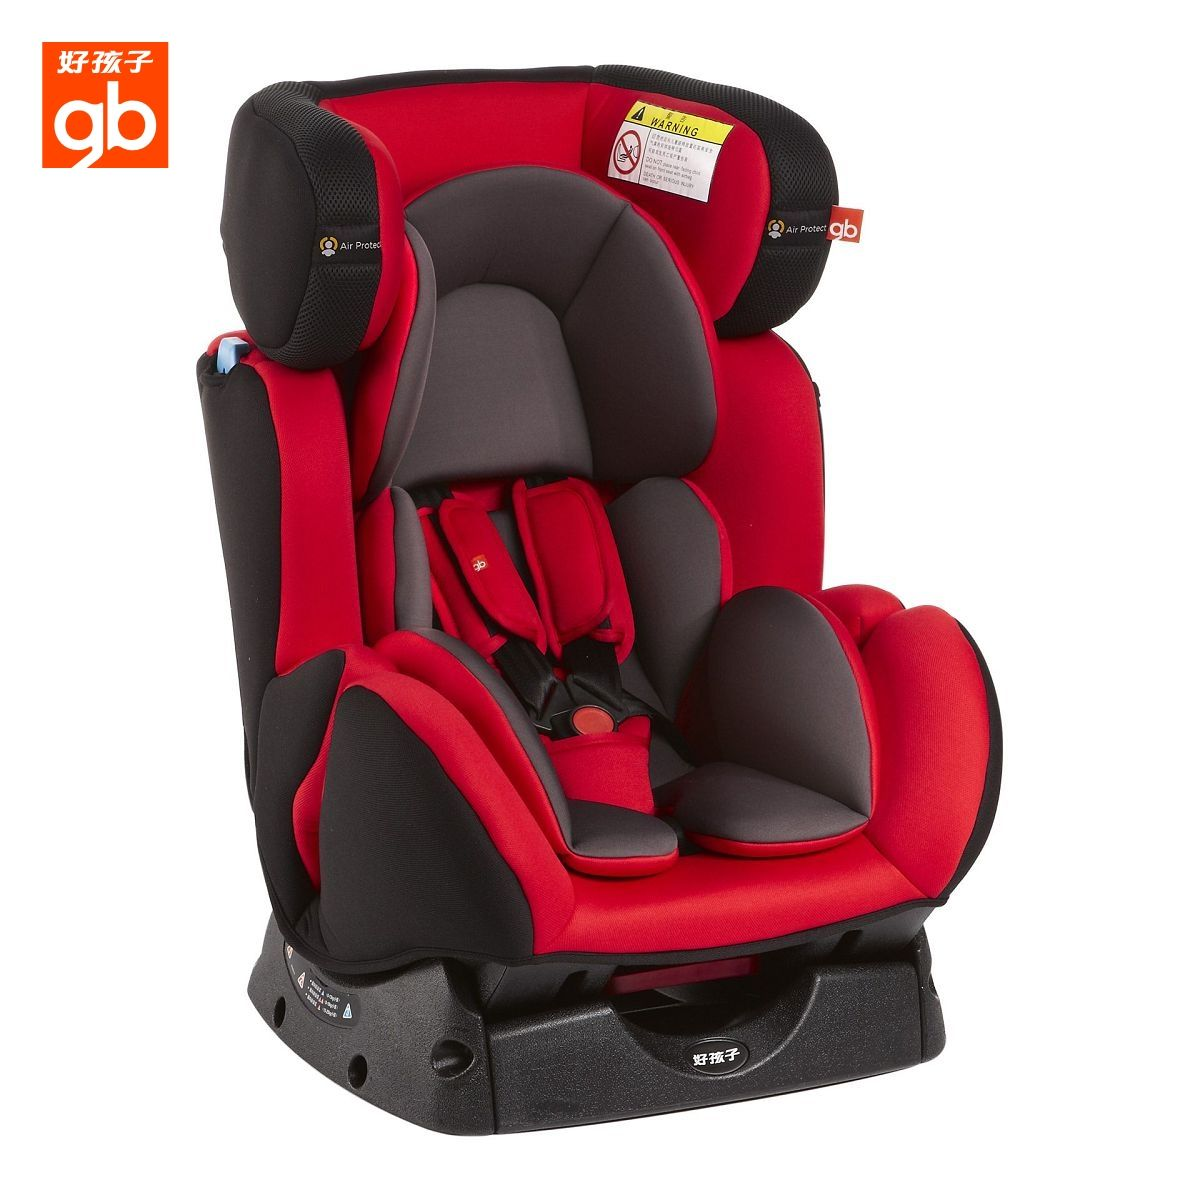 European standard infant child car seat